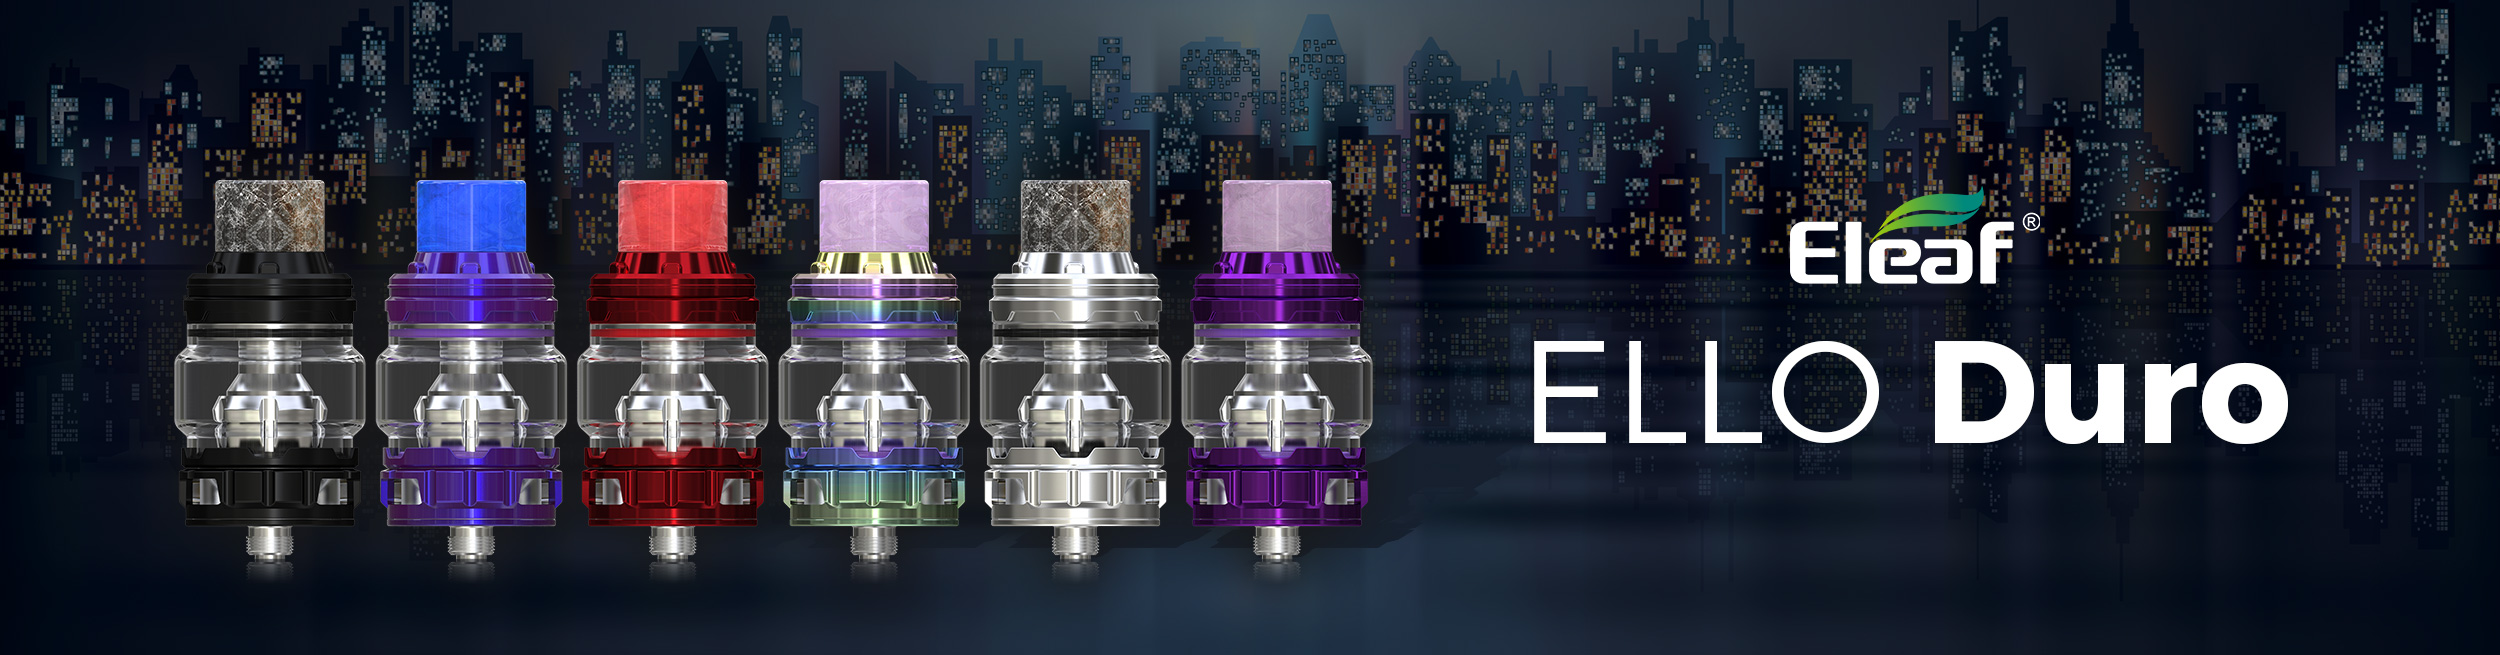 clearomizer-eleaf-ello-duro-6-5ml-prime-potahovani-do-plic_1